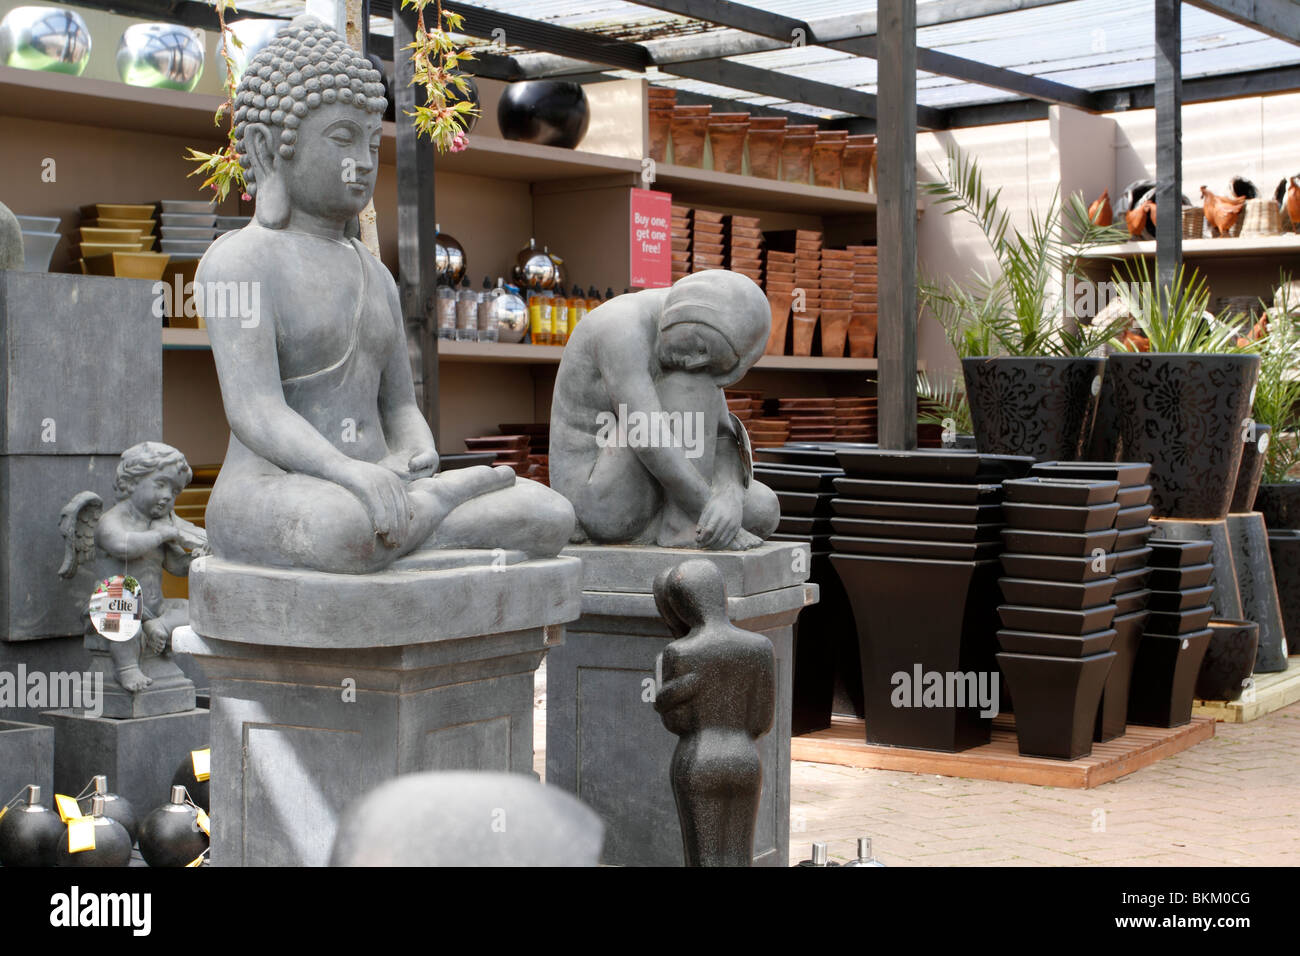 Statues And Pots On Racks At Brookfields Garden Centre